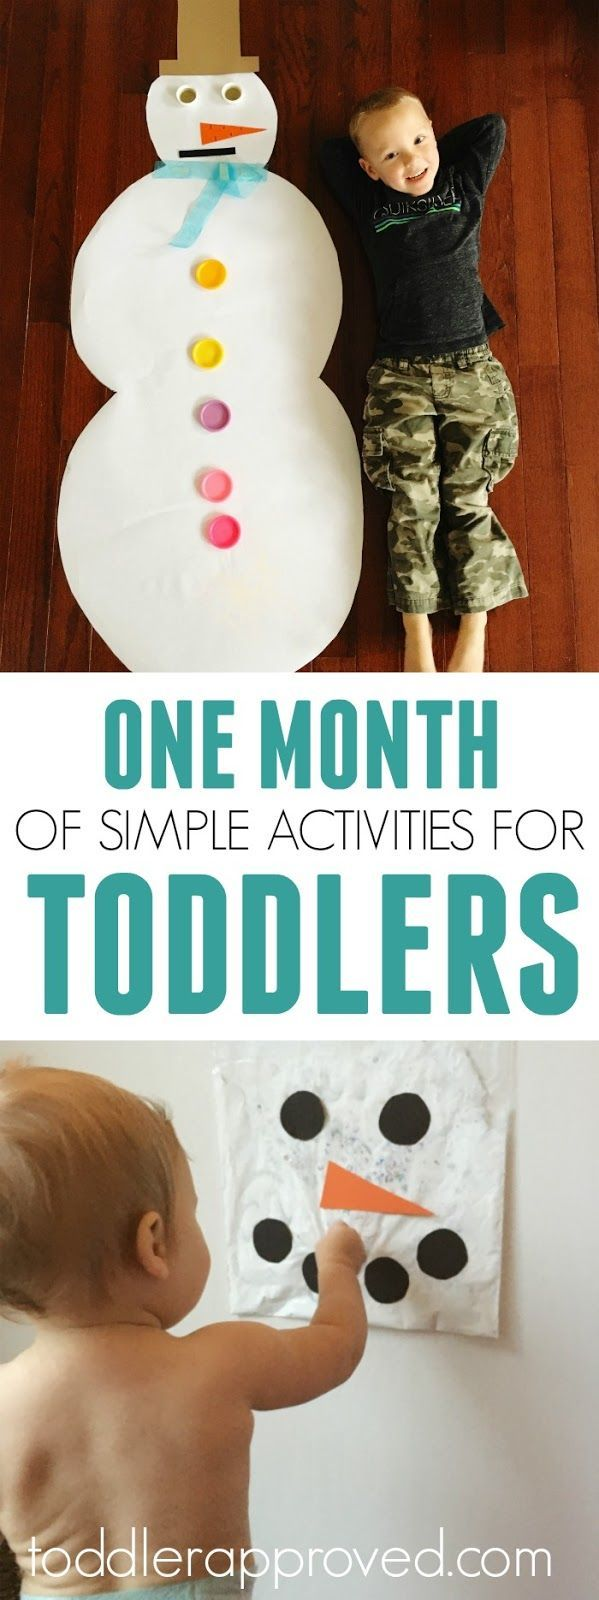 A Month of Simple Activities for Toddlers! Subscribe to our FREE Toddler Approved Newsletter. Get our FREE monthly calendar with activity ideas!